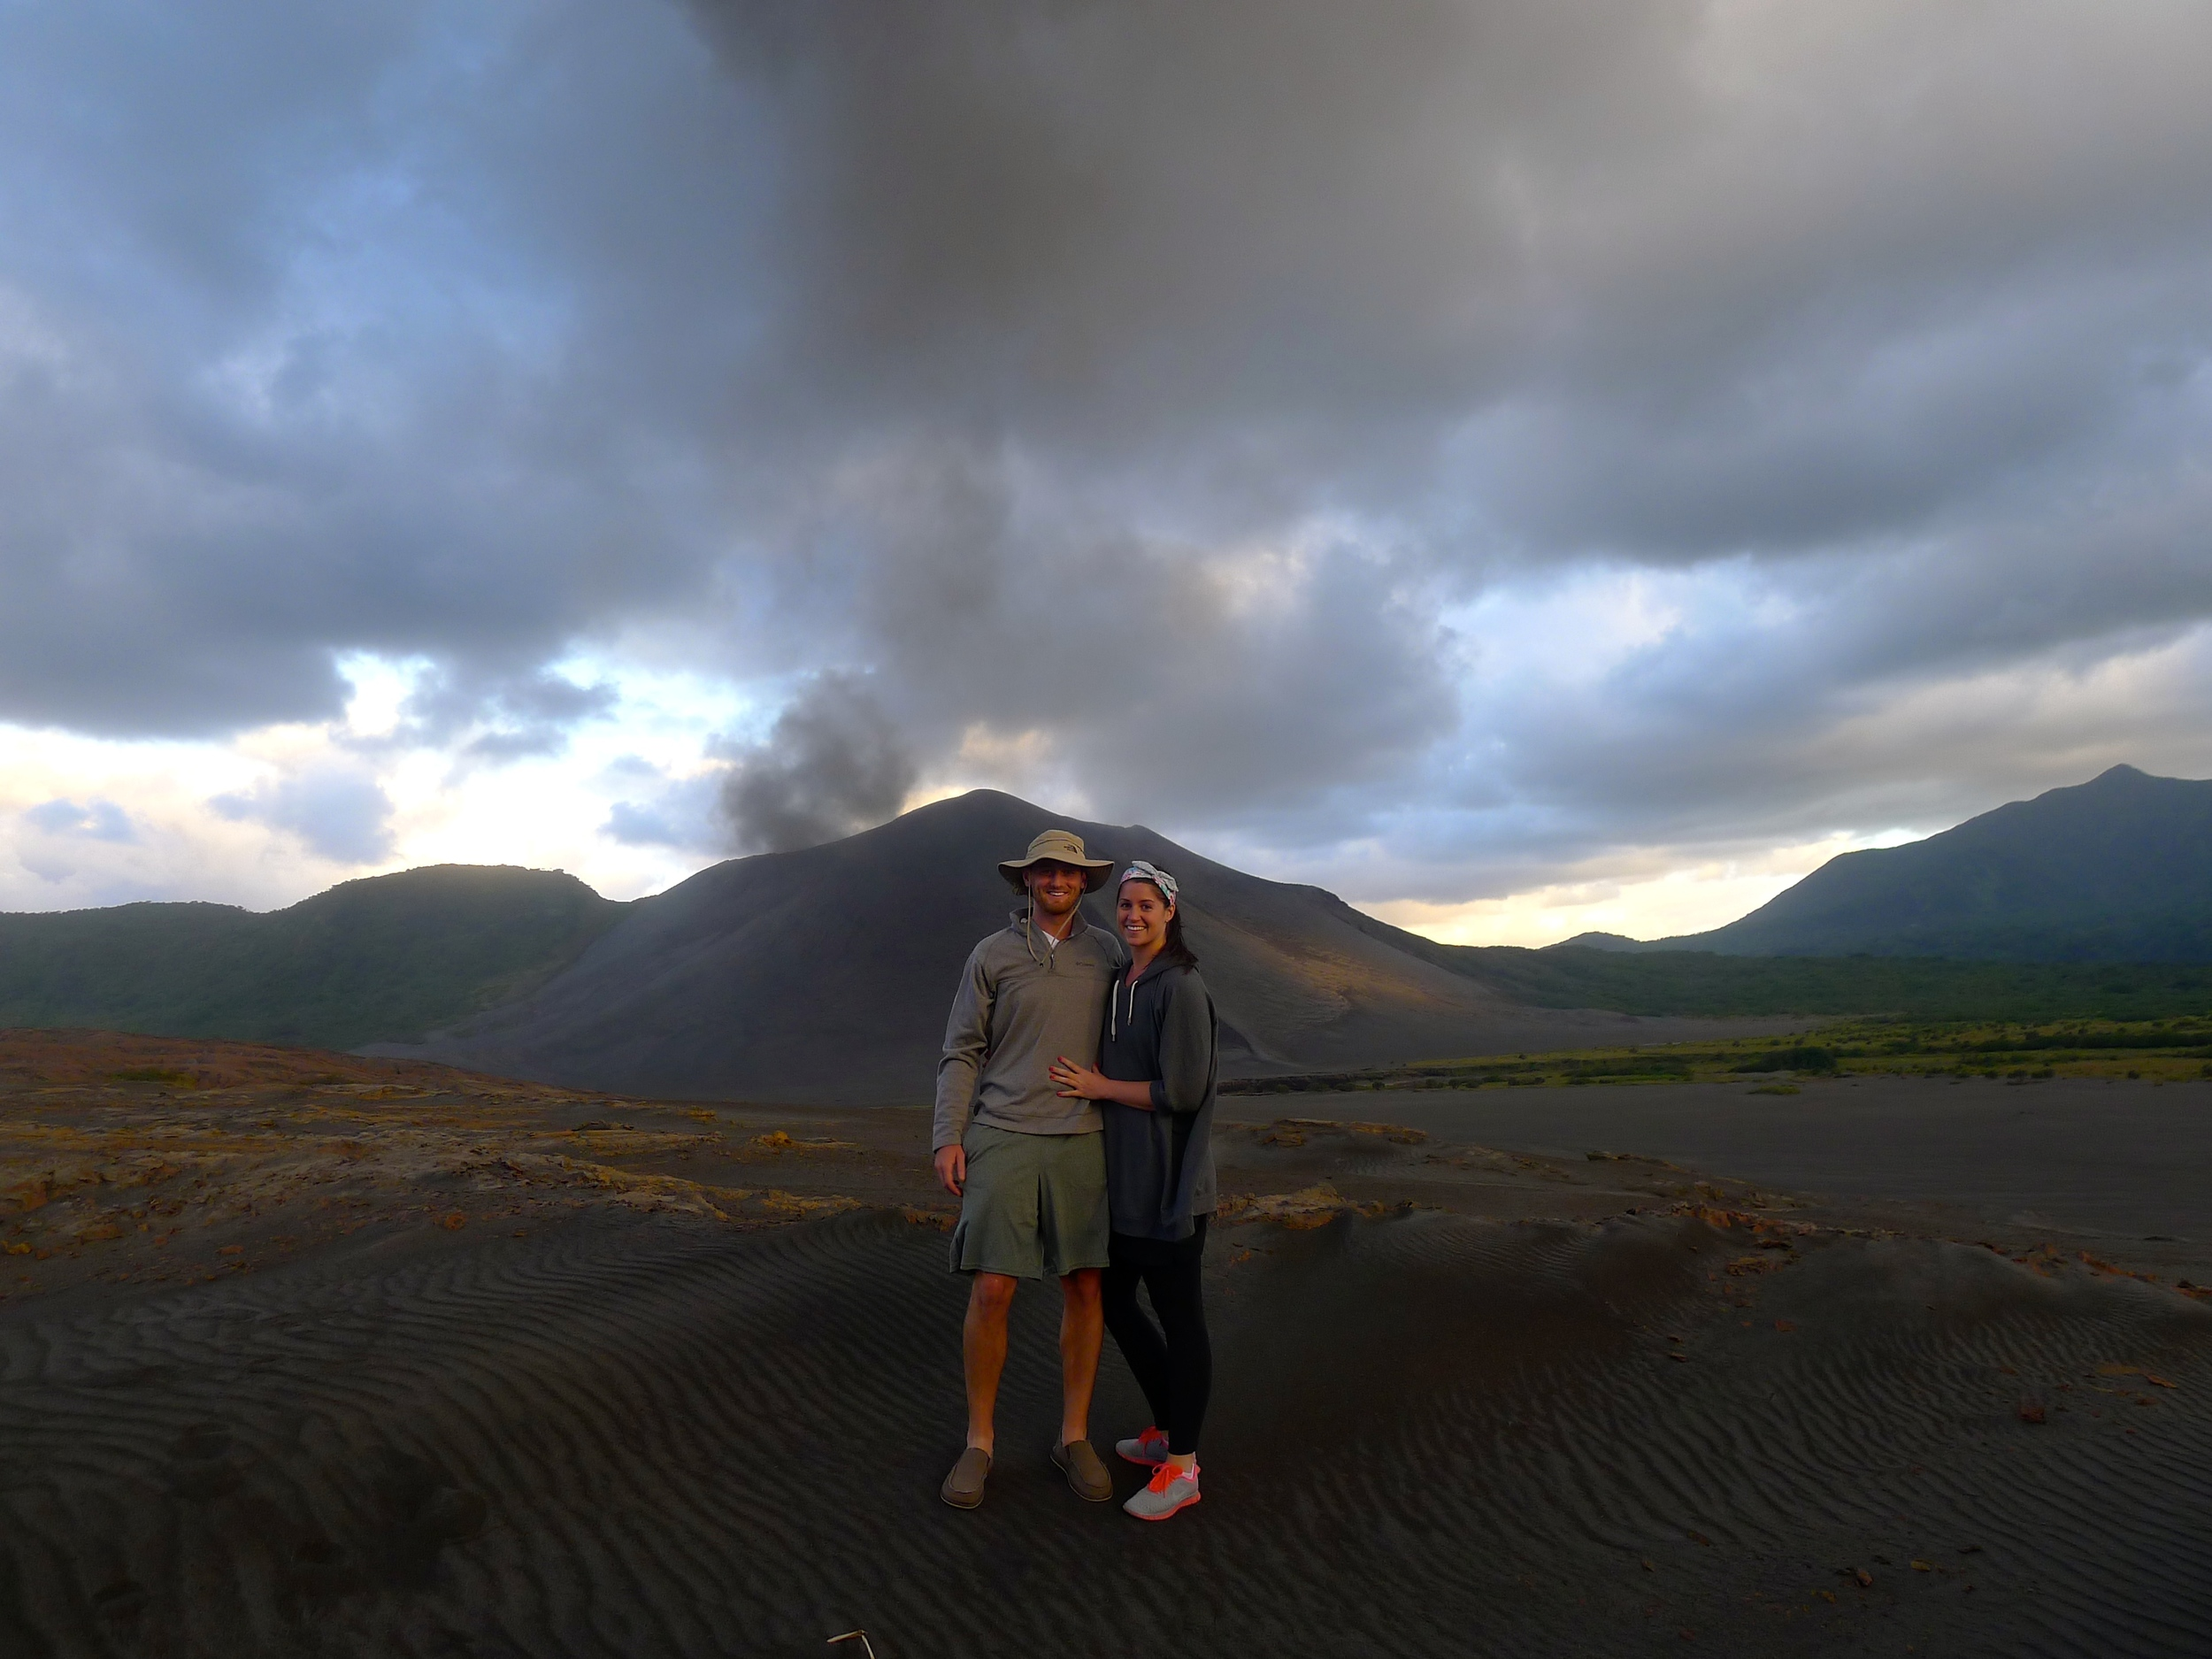 VANUATU TRIP 2013 - THIS VOLCANO JUST MADE THE TOP 10 LIST OF THE WORLDS MOST ACTIVE VOLCANOES